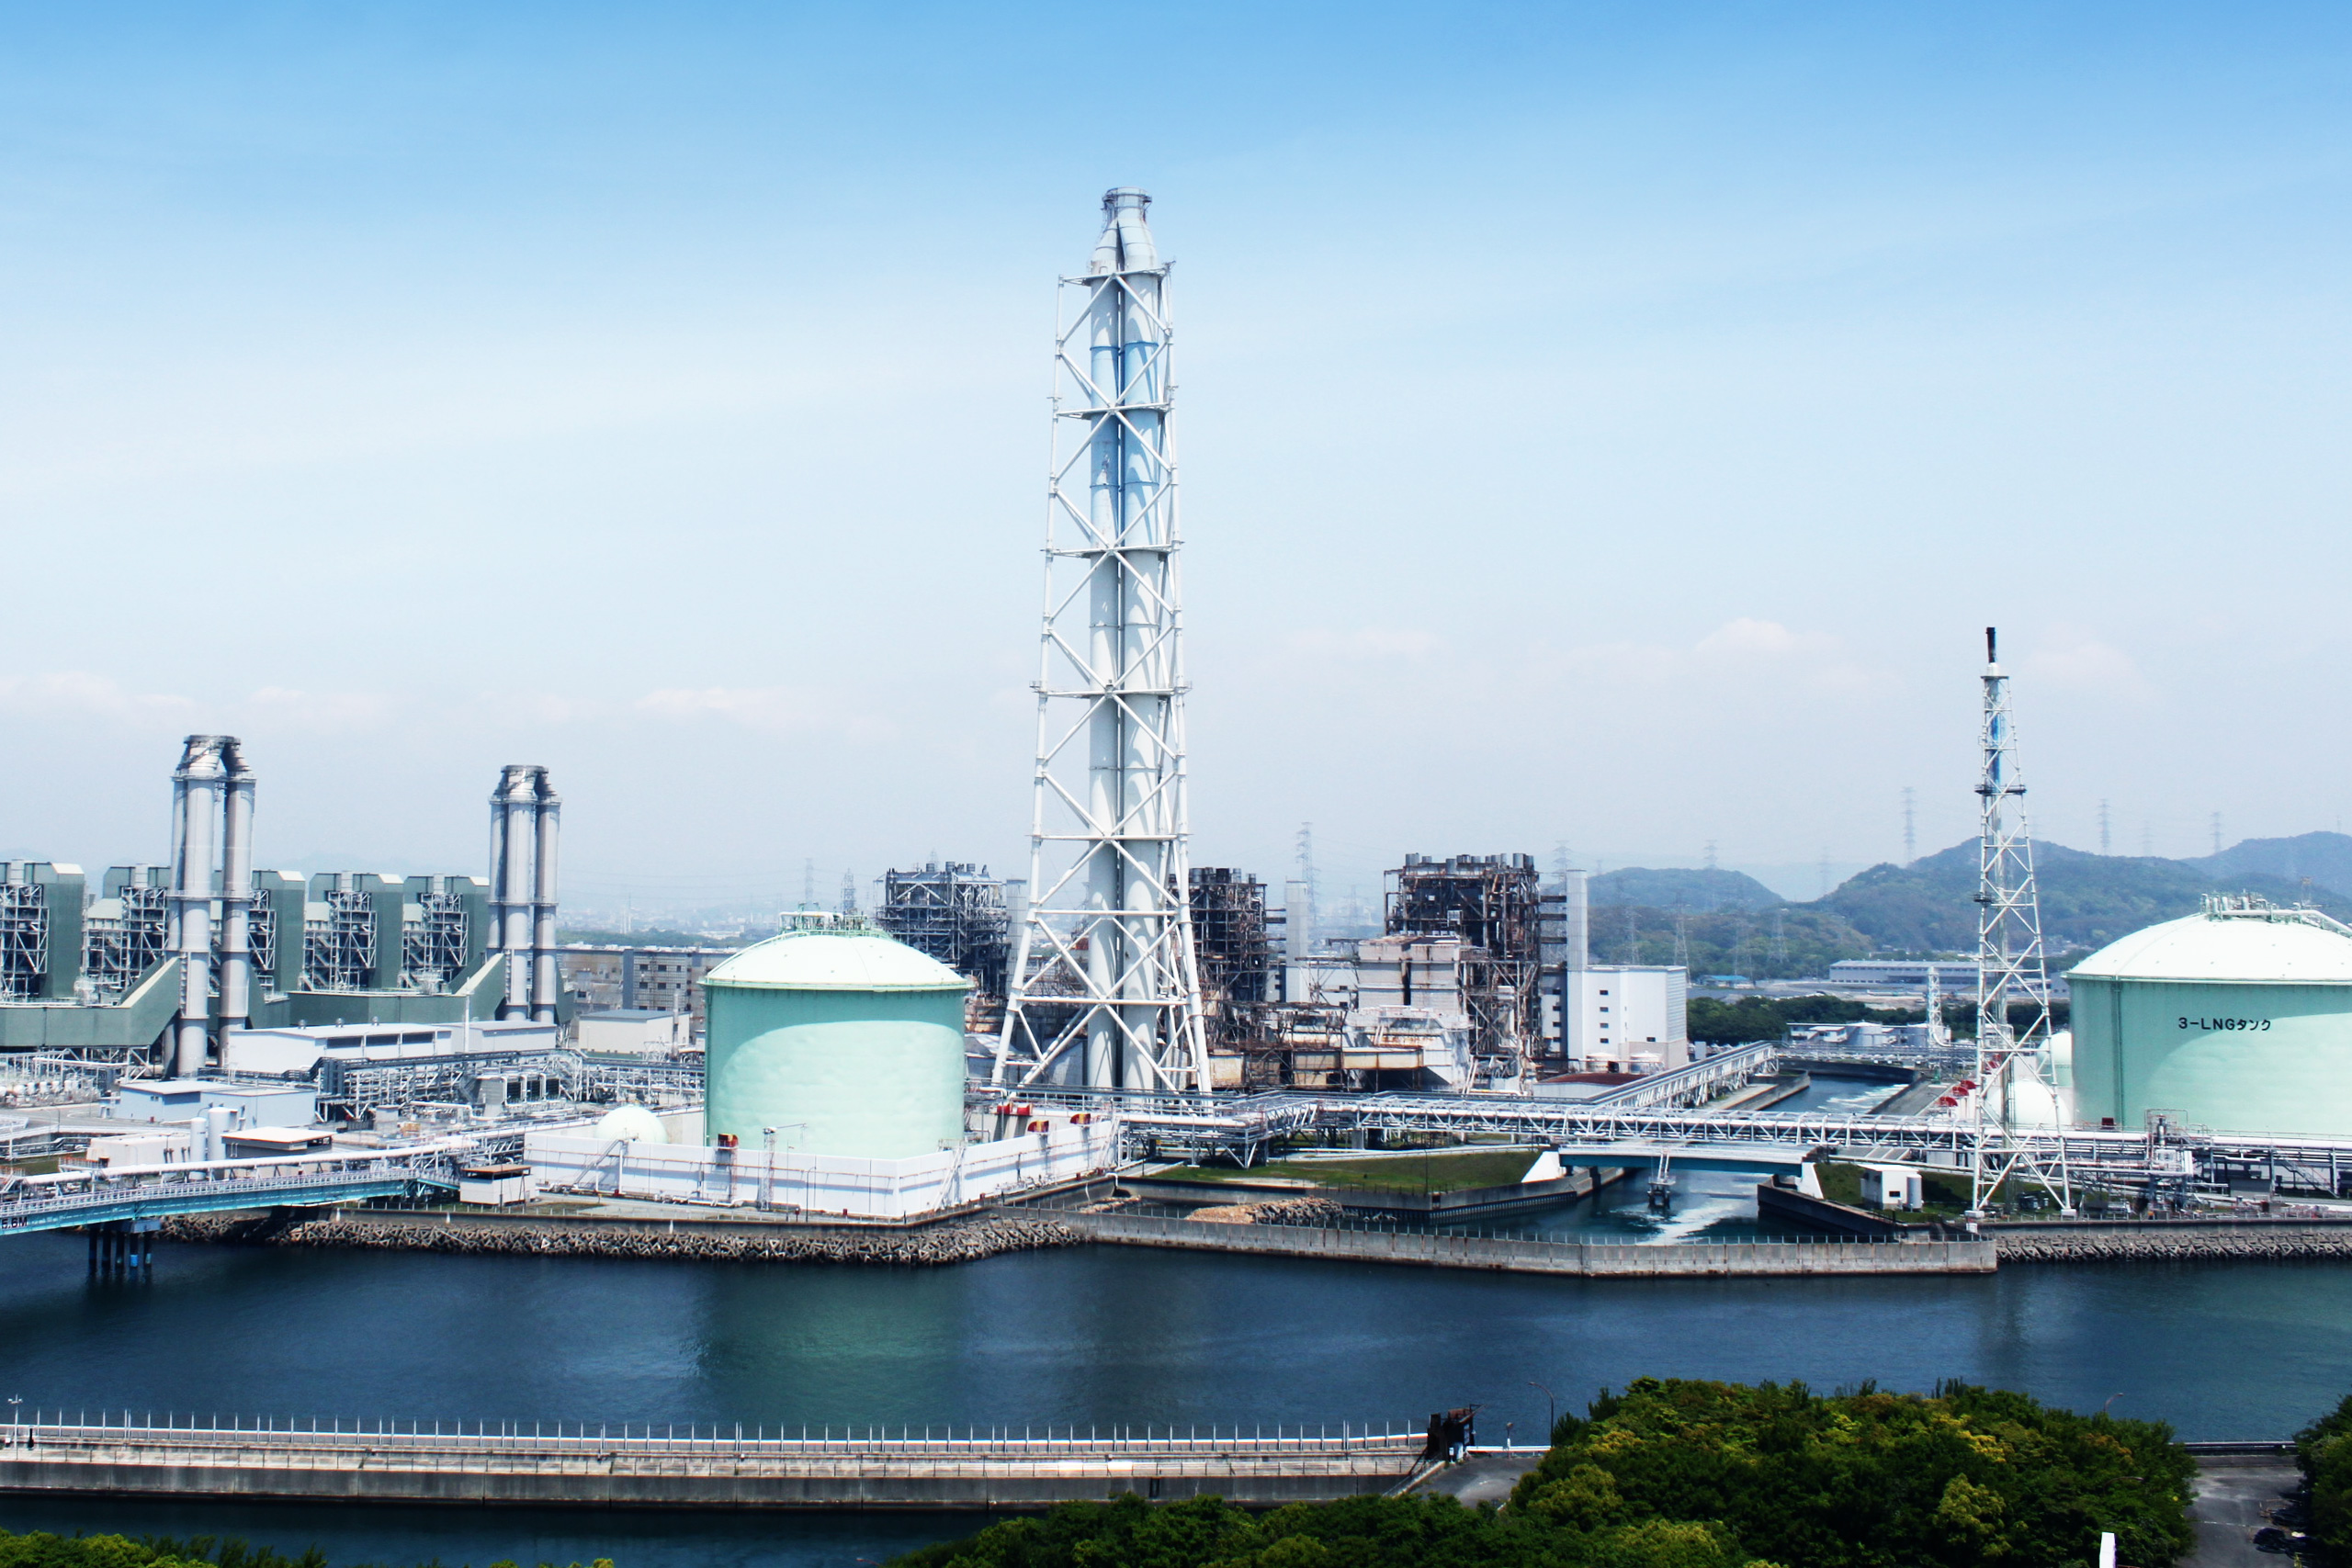 works_kepco-lng_detail_02